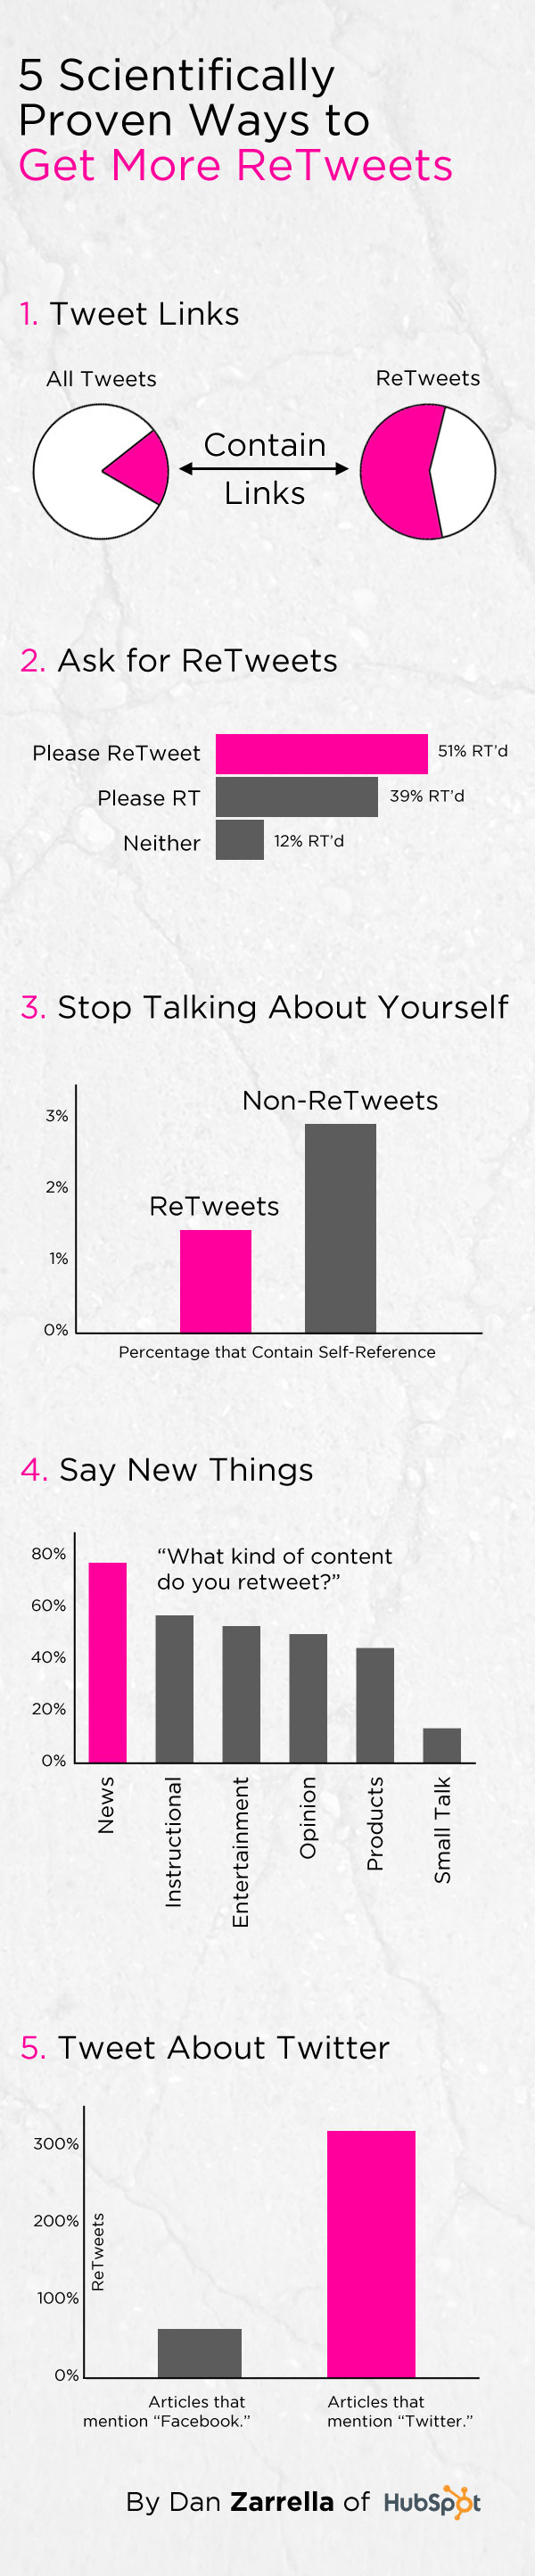 5 Ways to Increase Your Number of Twitter Retweets